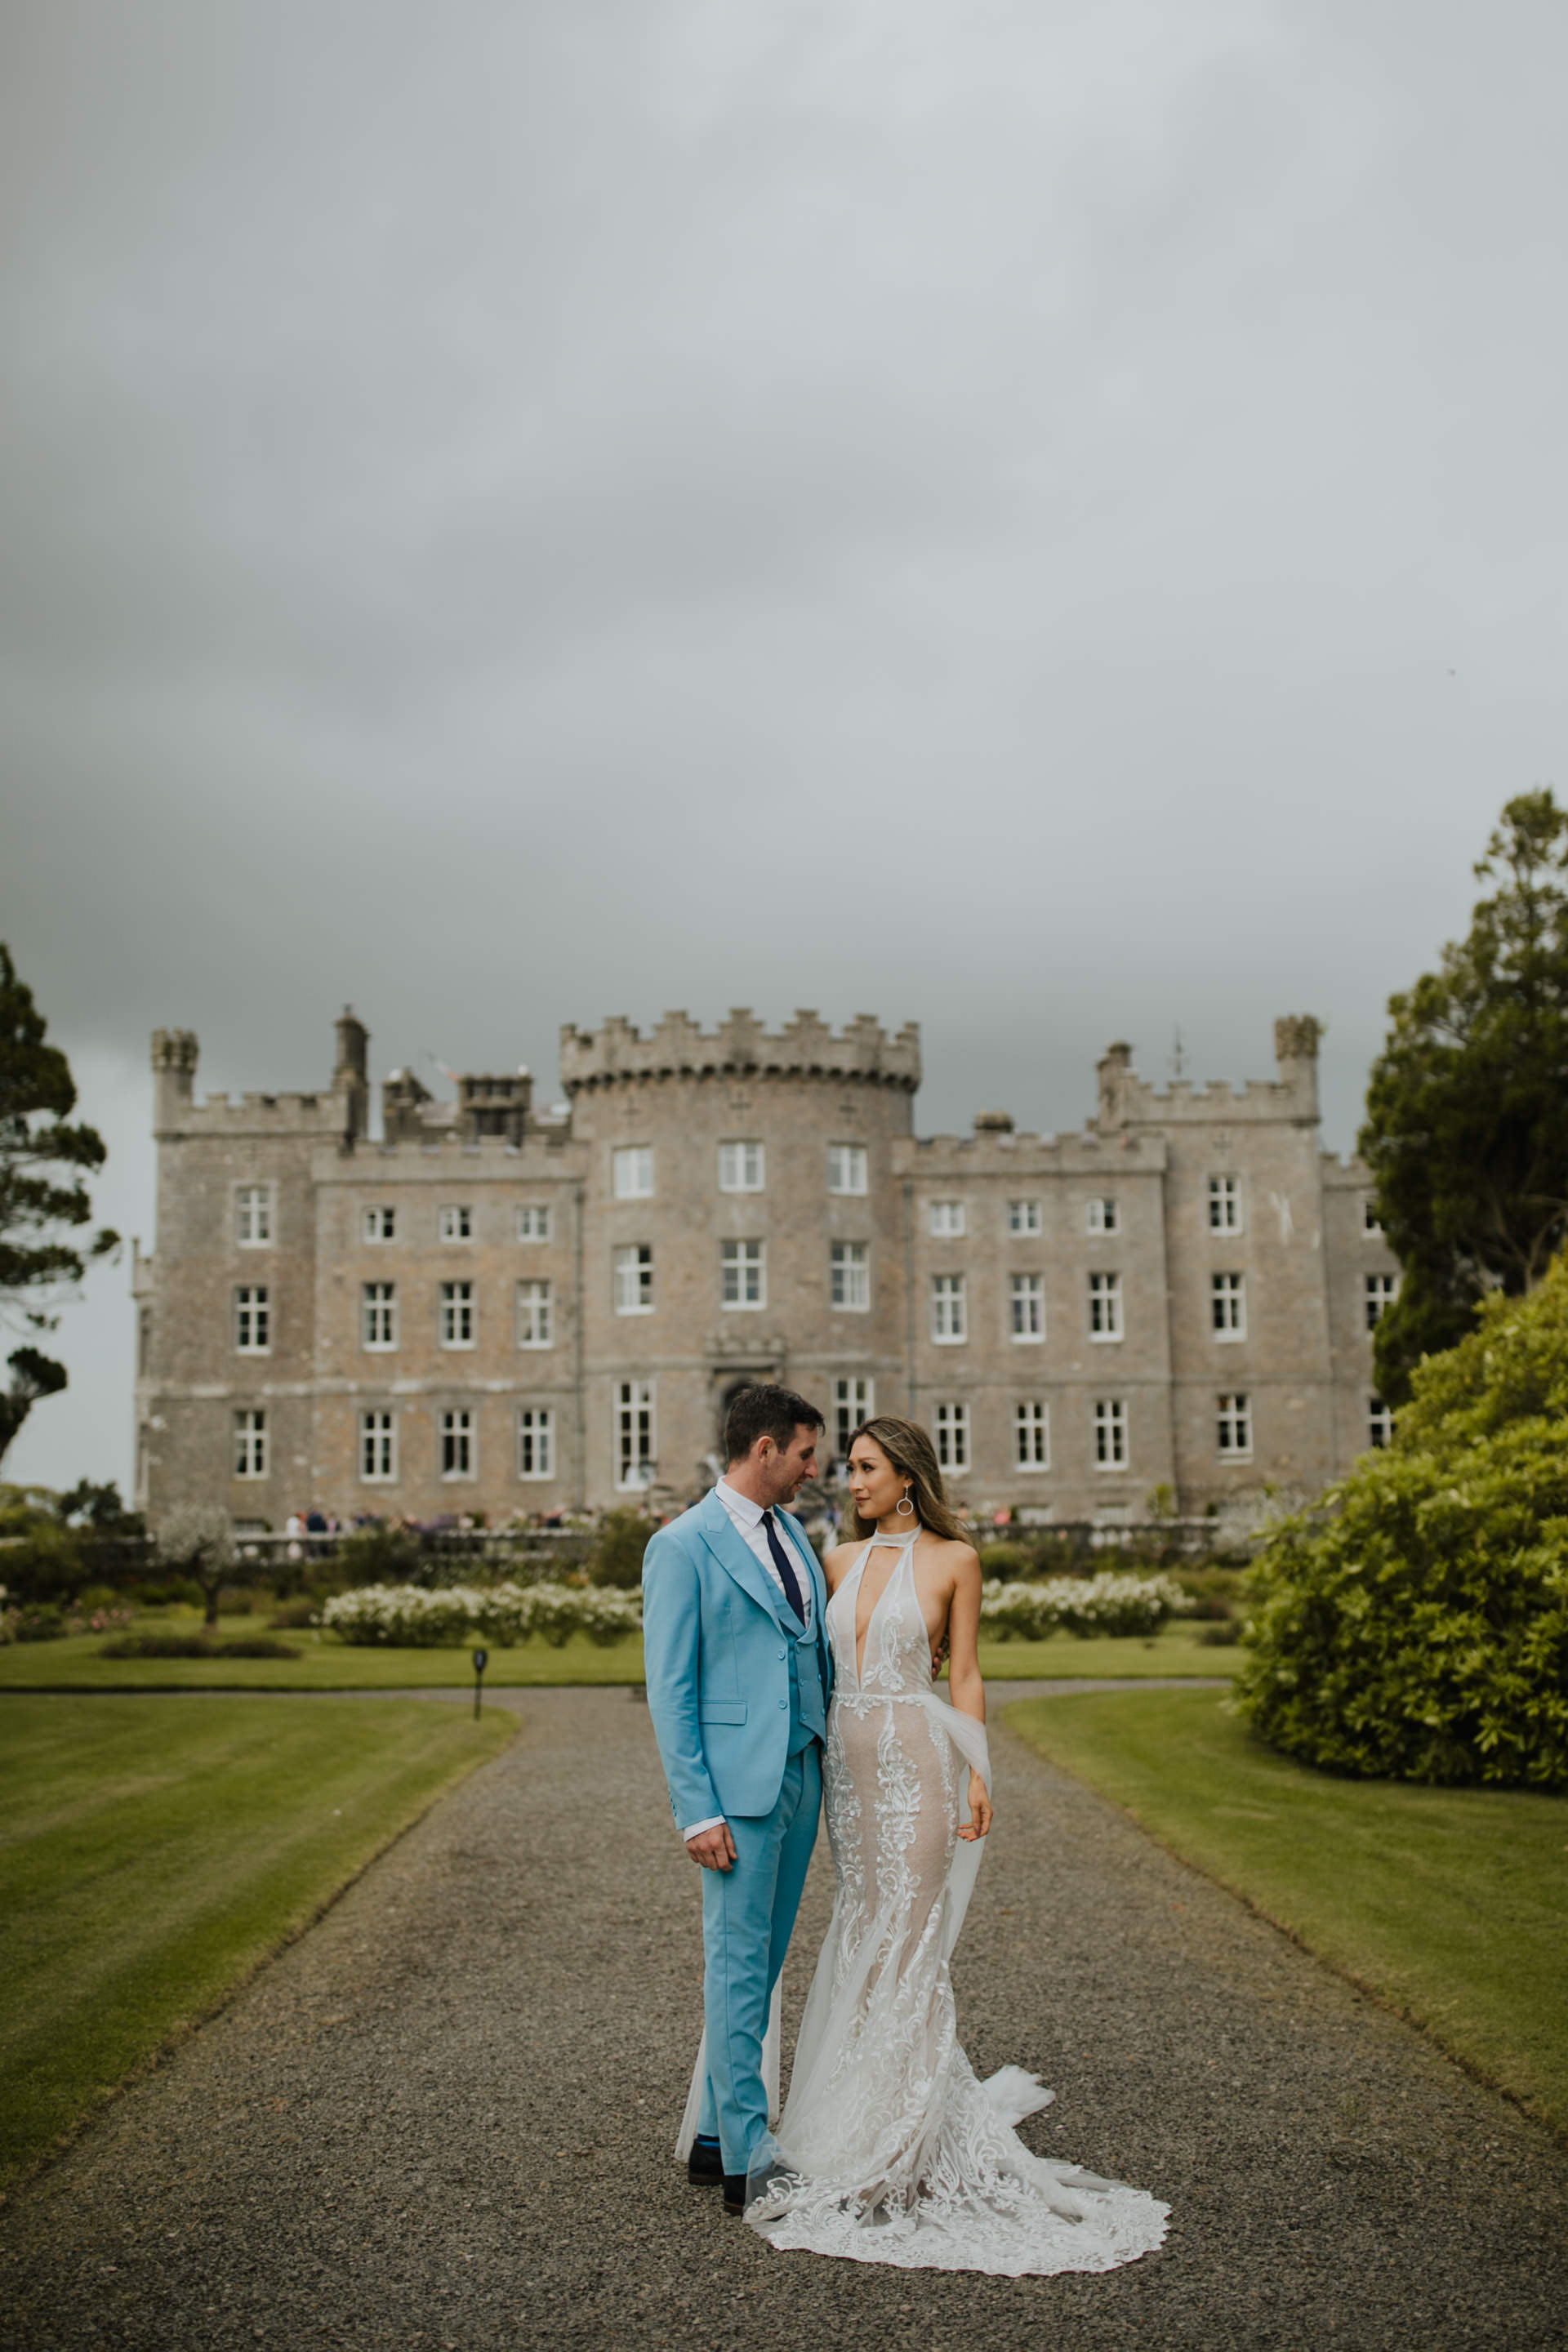 d&c_markree_castle_sligo_wedding_photographer_livia_figueiredo_1.jpg